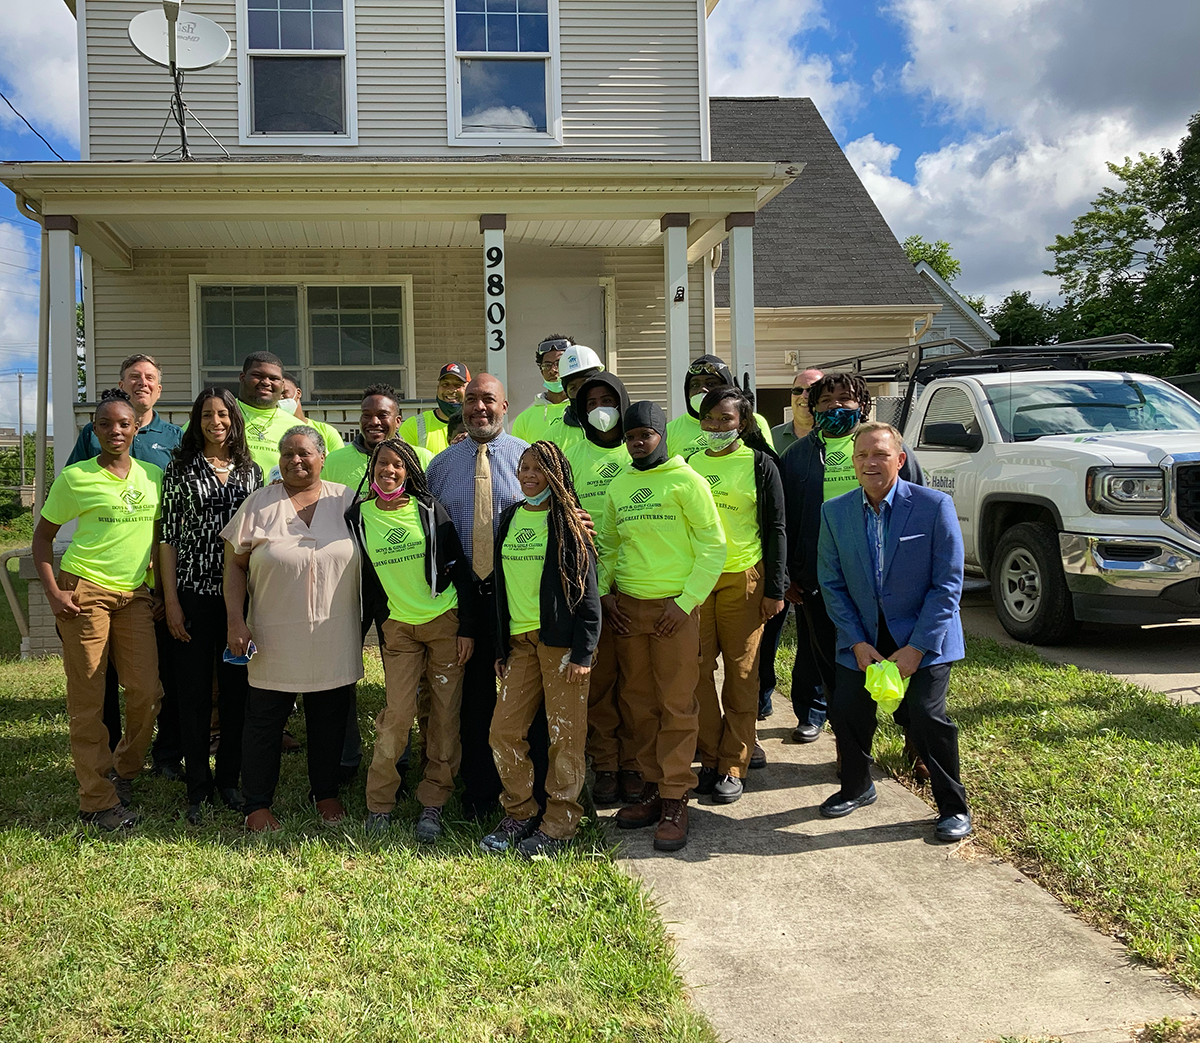 Cleveland teens to learn construction skills, help rehab 4 homes during summer program